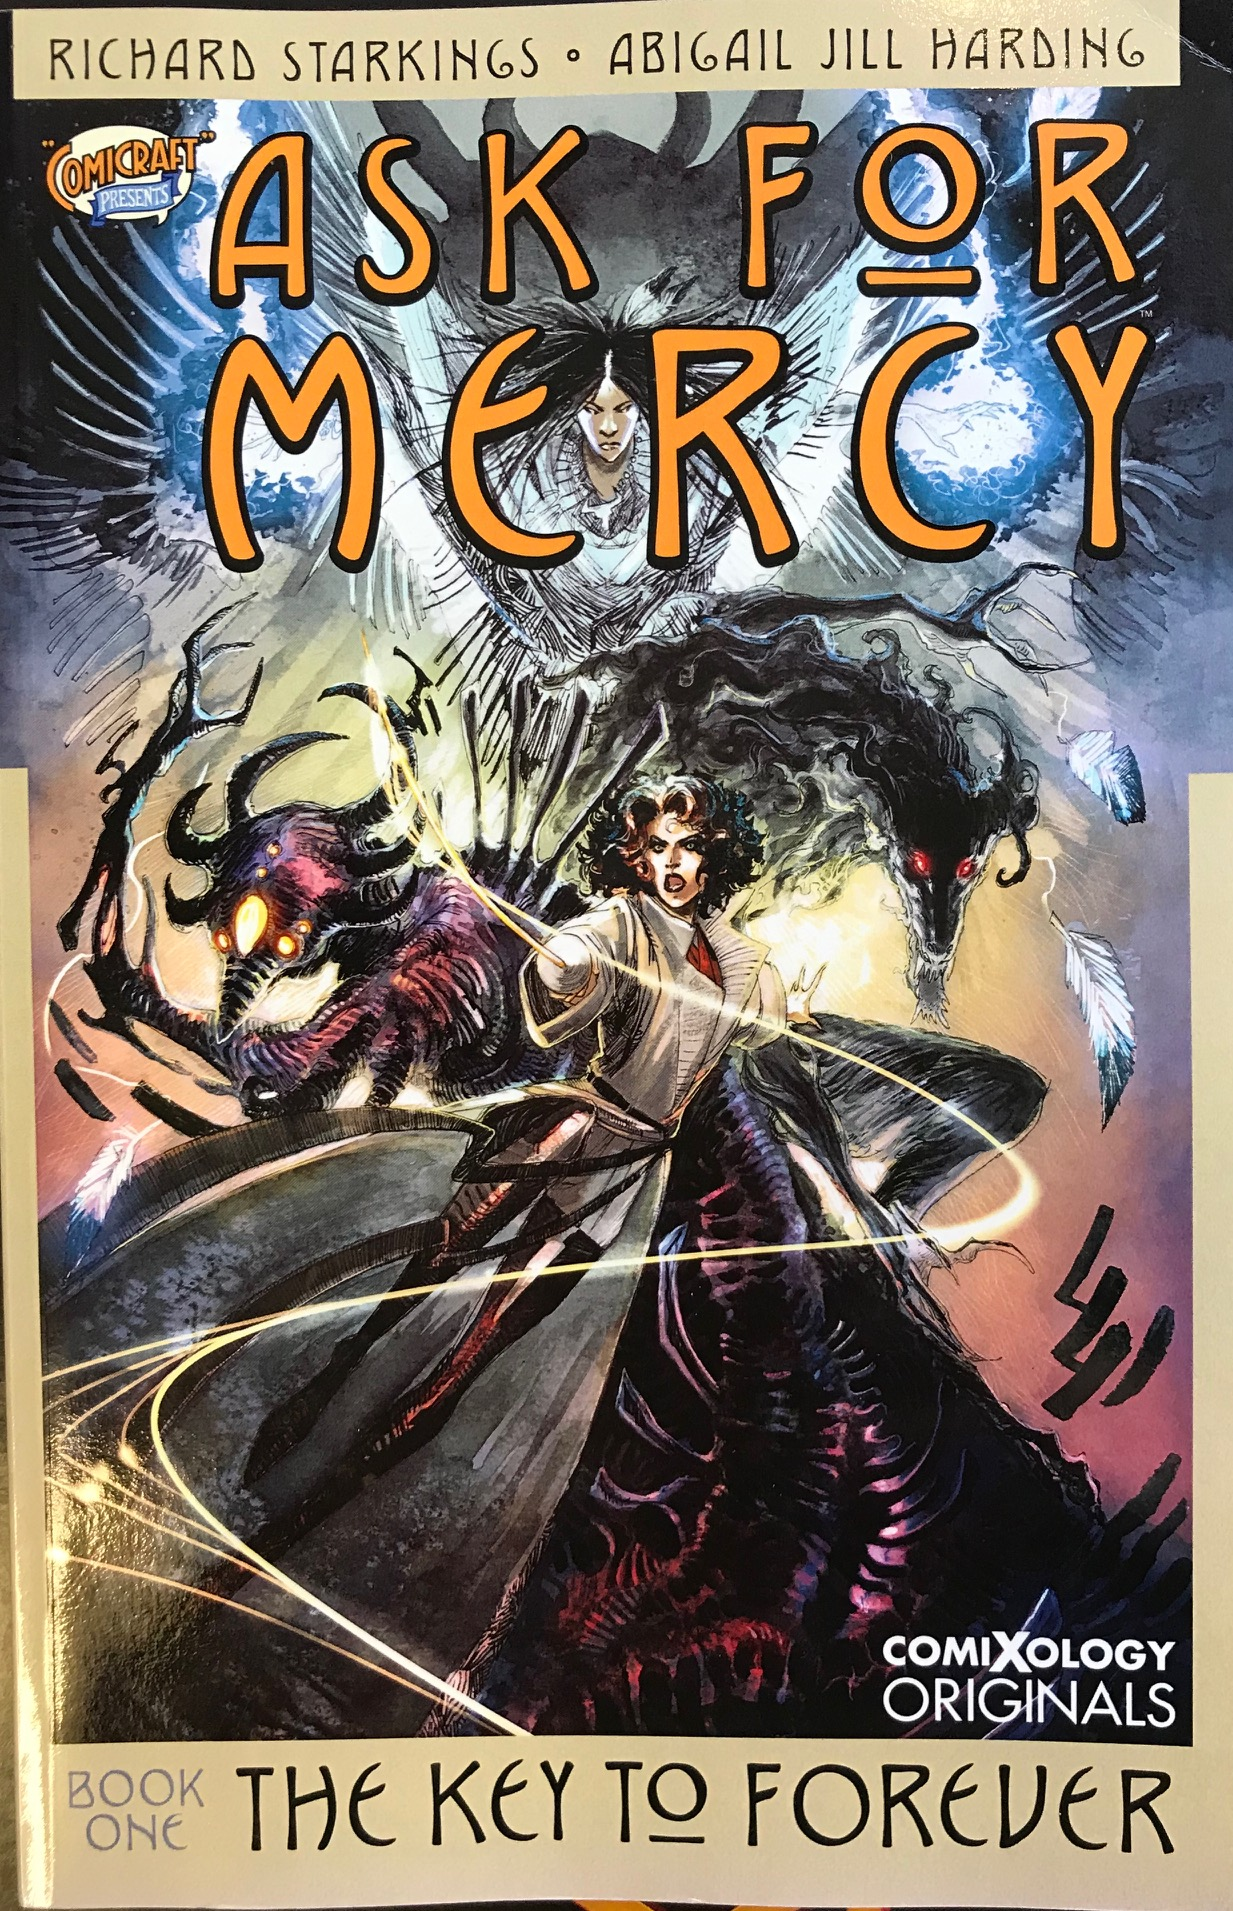 ask-for-mercy-richard-starkings